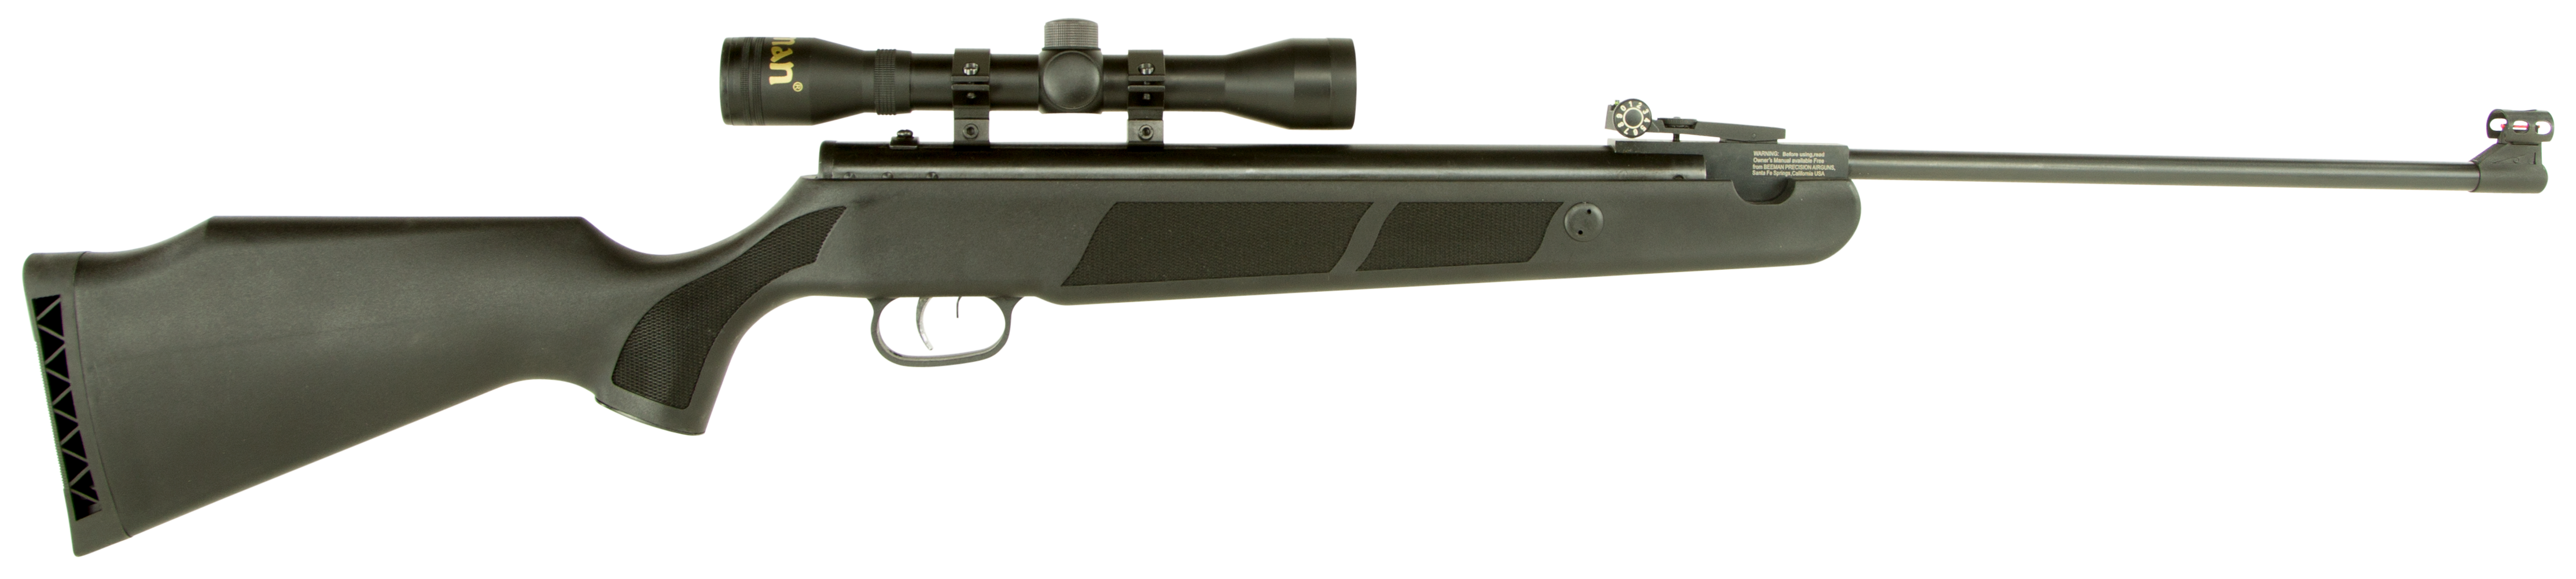 Beeman 1071  Wolverine Carbine Air Rifle with 4x32 Scope Break Open .177 FOF Pellet Black Synthetic Stock Blued